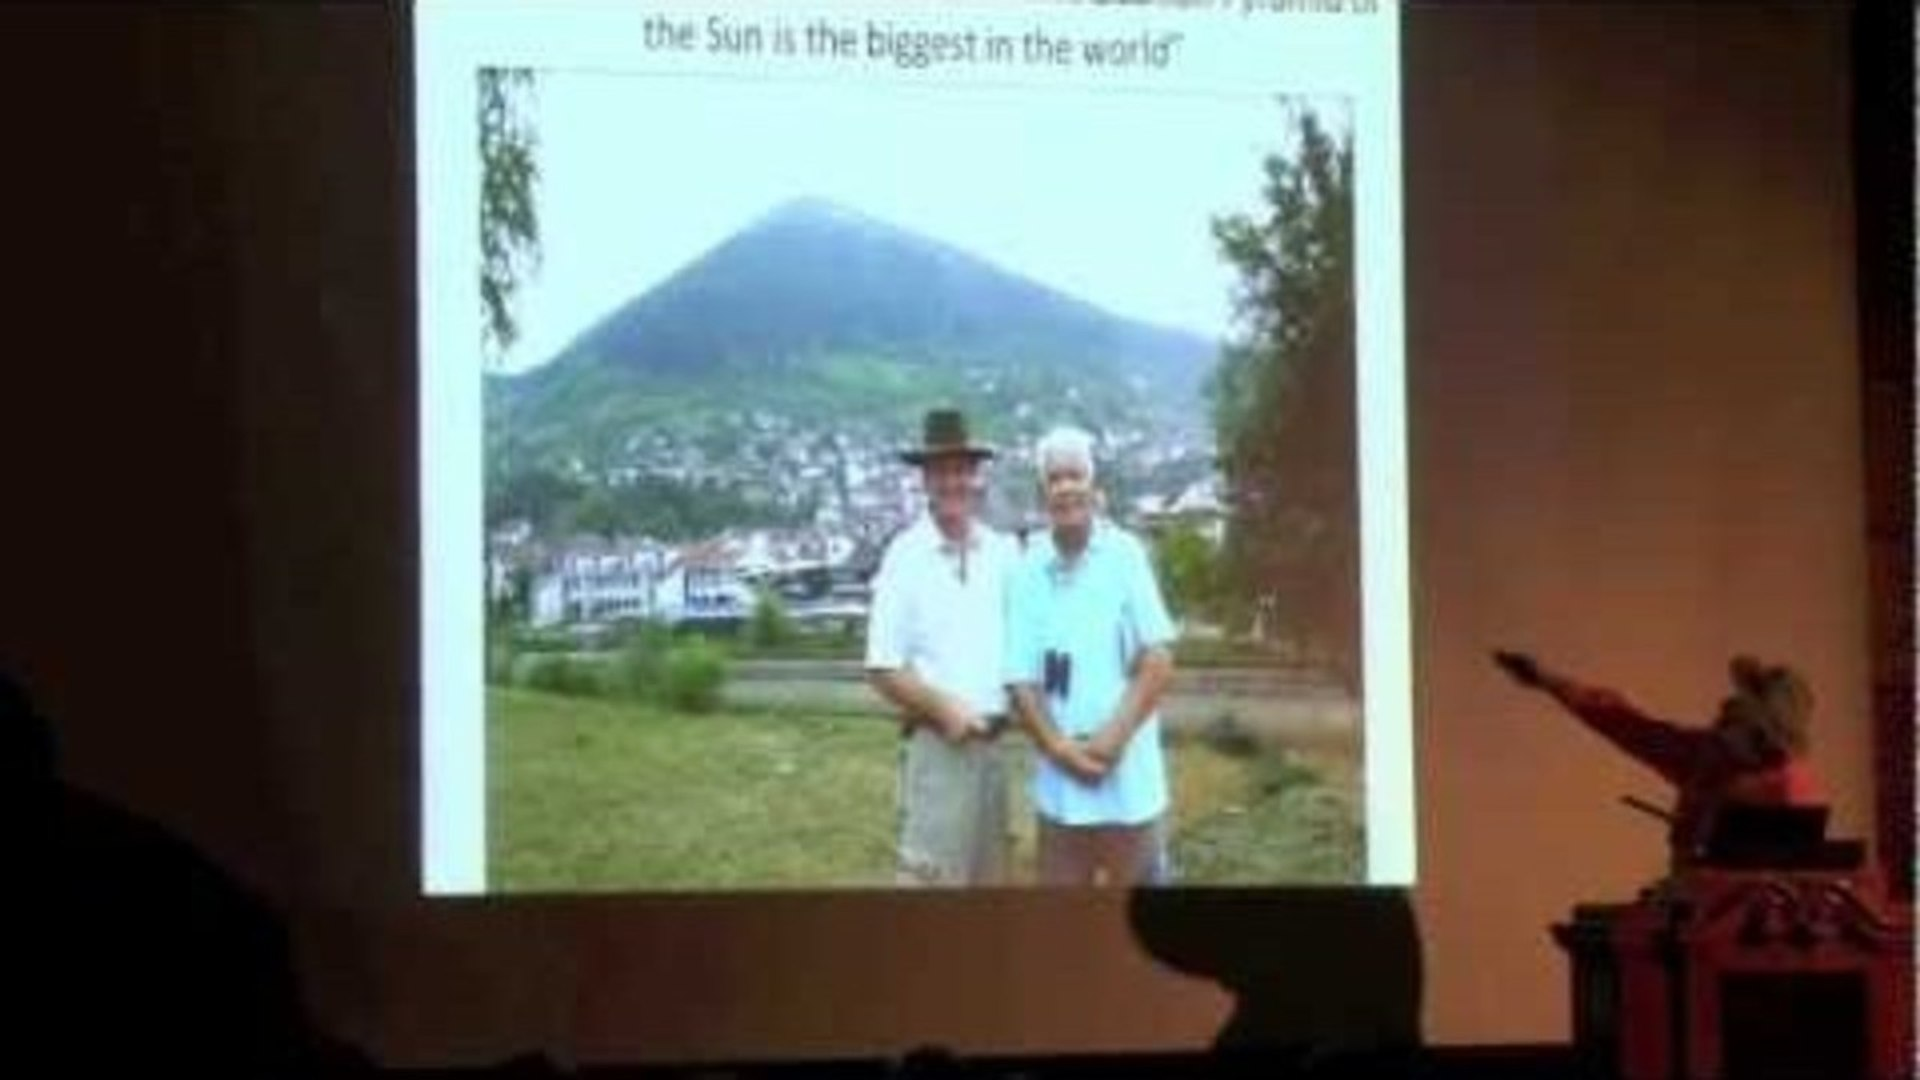 Lecture with Dr. Sam Osmanagich in Oslo about The Bosnian Pyramids